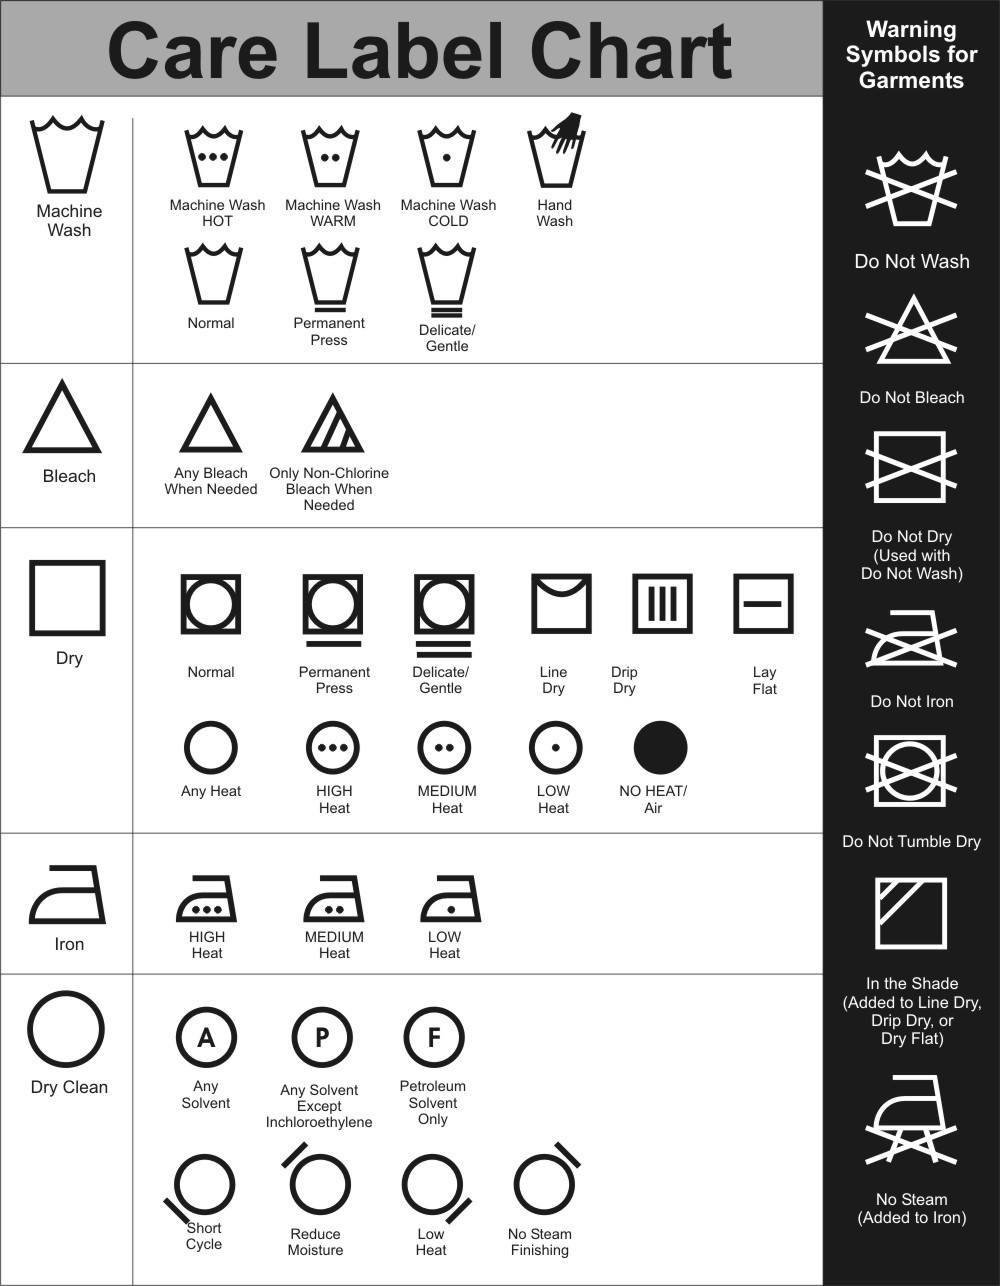 Dry Cleaning Symbols and Garment Care Labels – What Do They Mean?